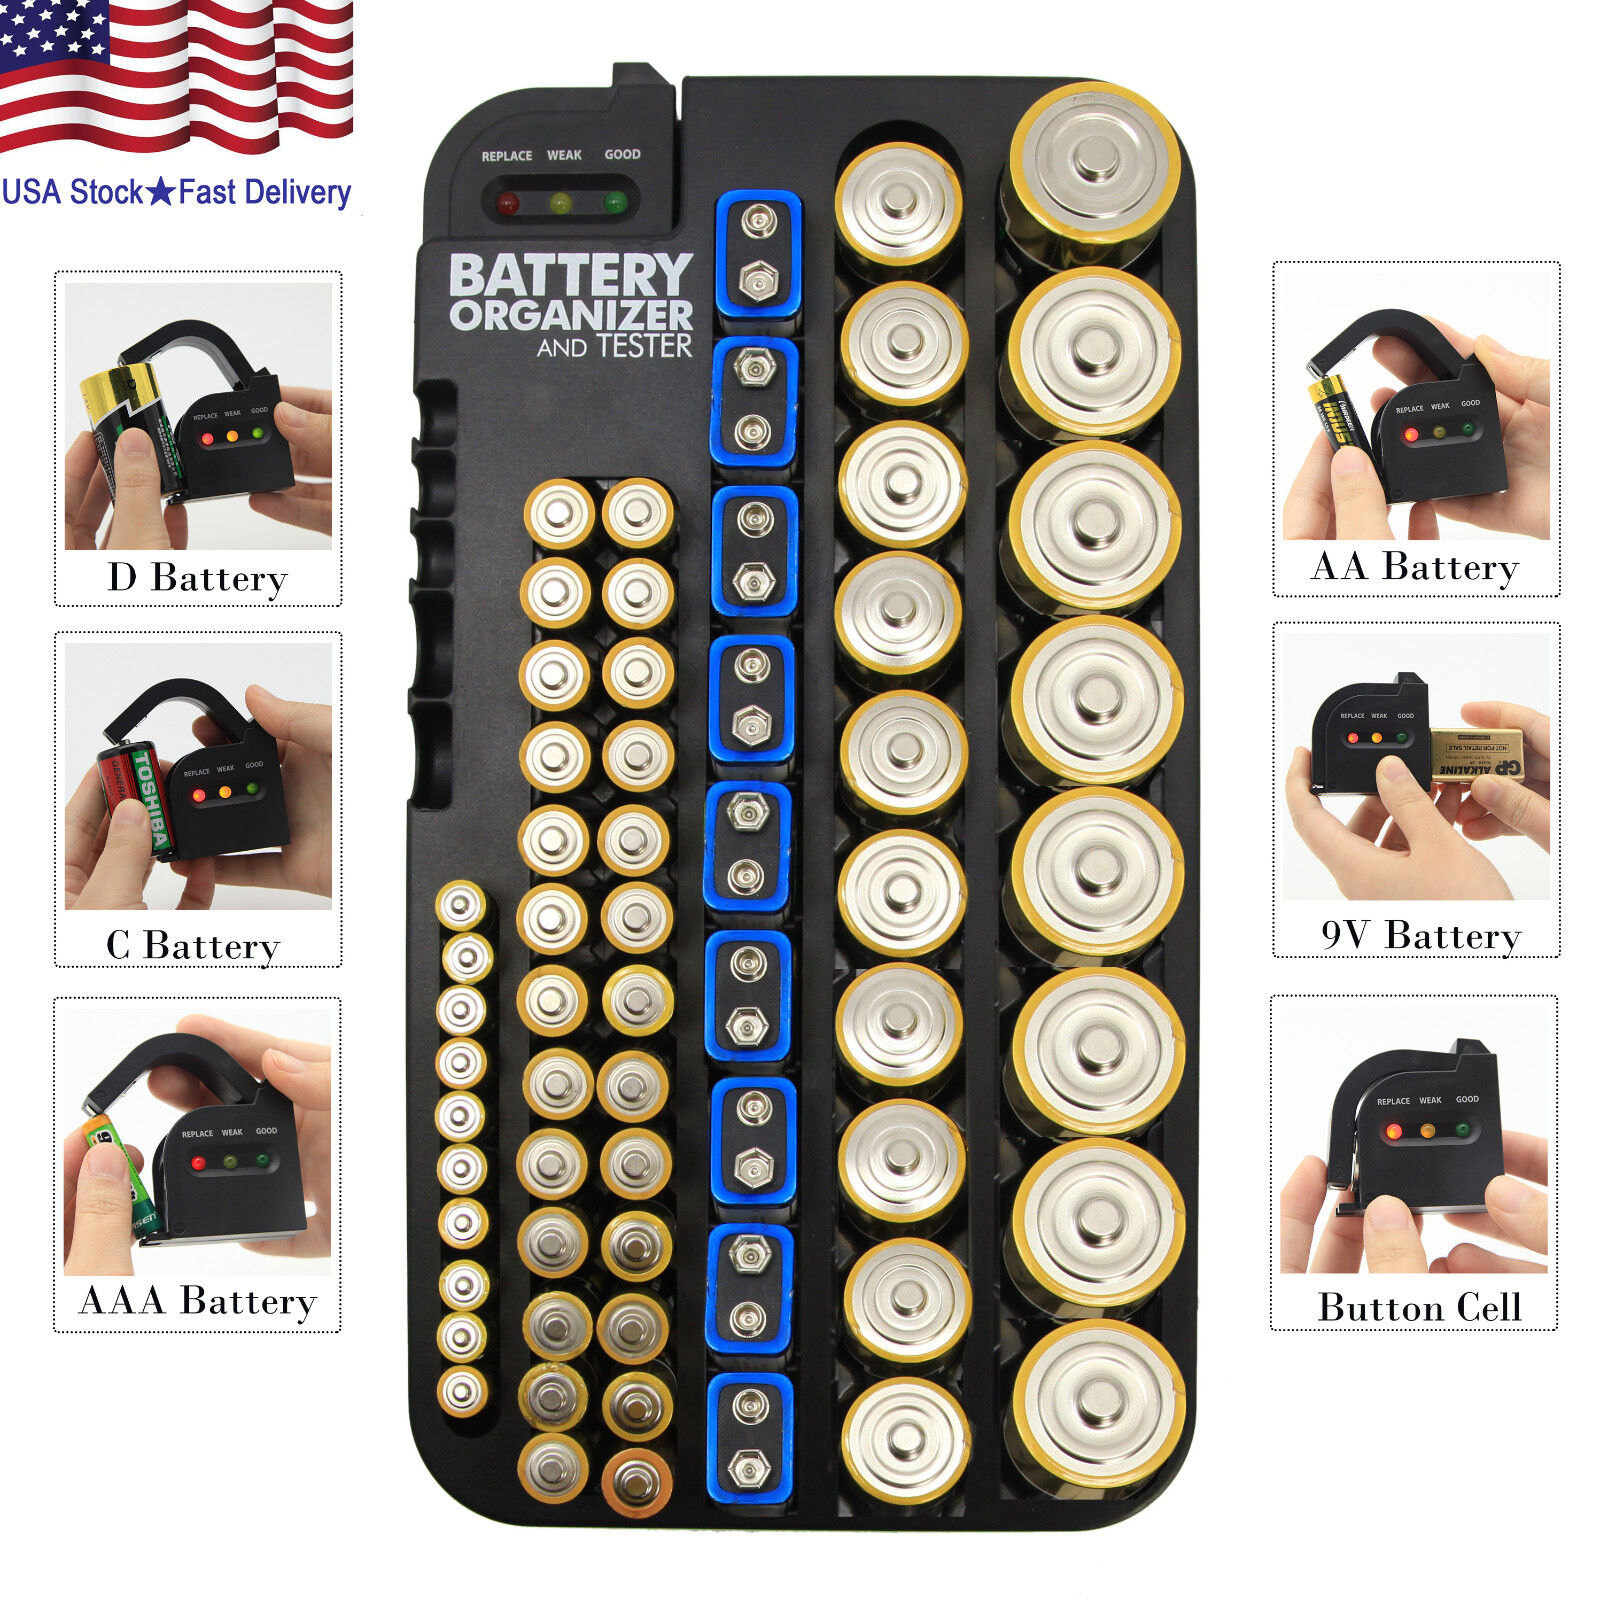 Battery Organizer and Tester Removable 72 Batteries Wall Mou